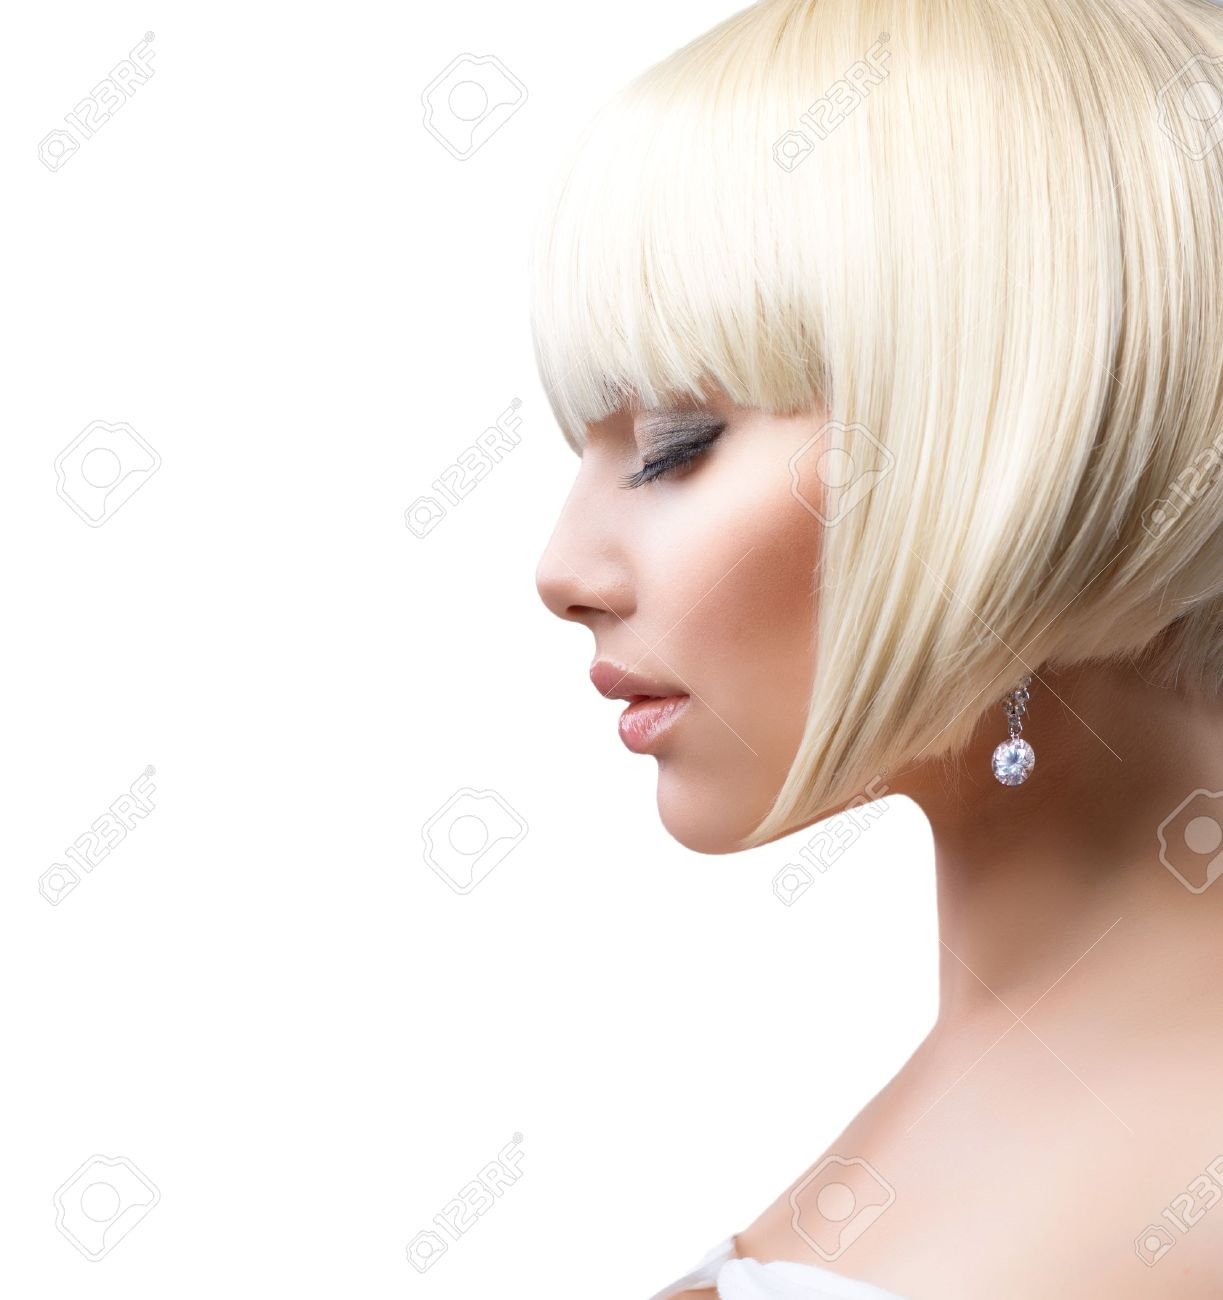 Blond Hair  Beautiful Girl with Healthy Short Hair Stock Photo - 14306244